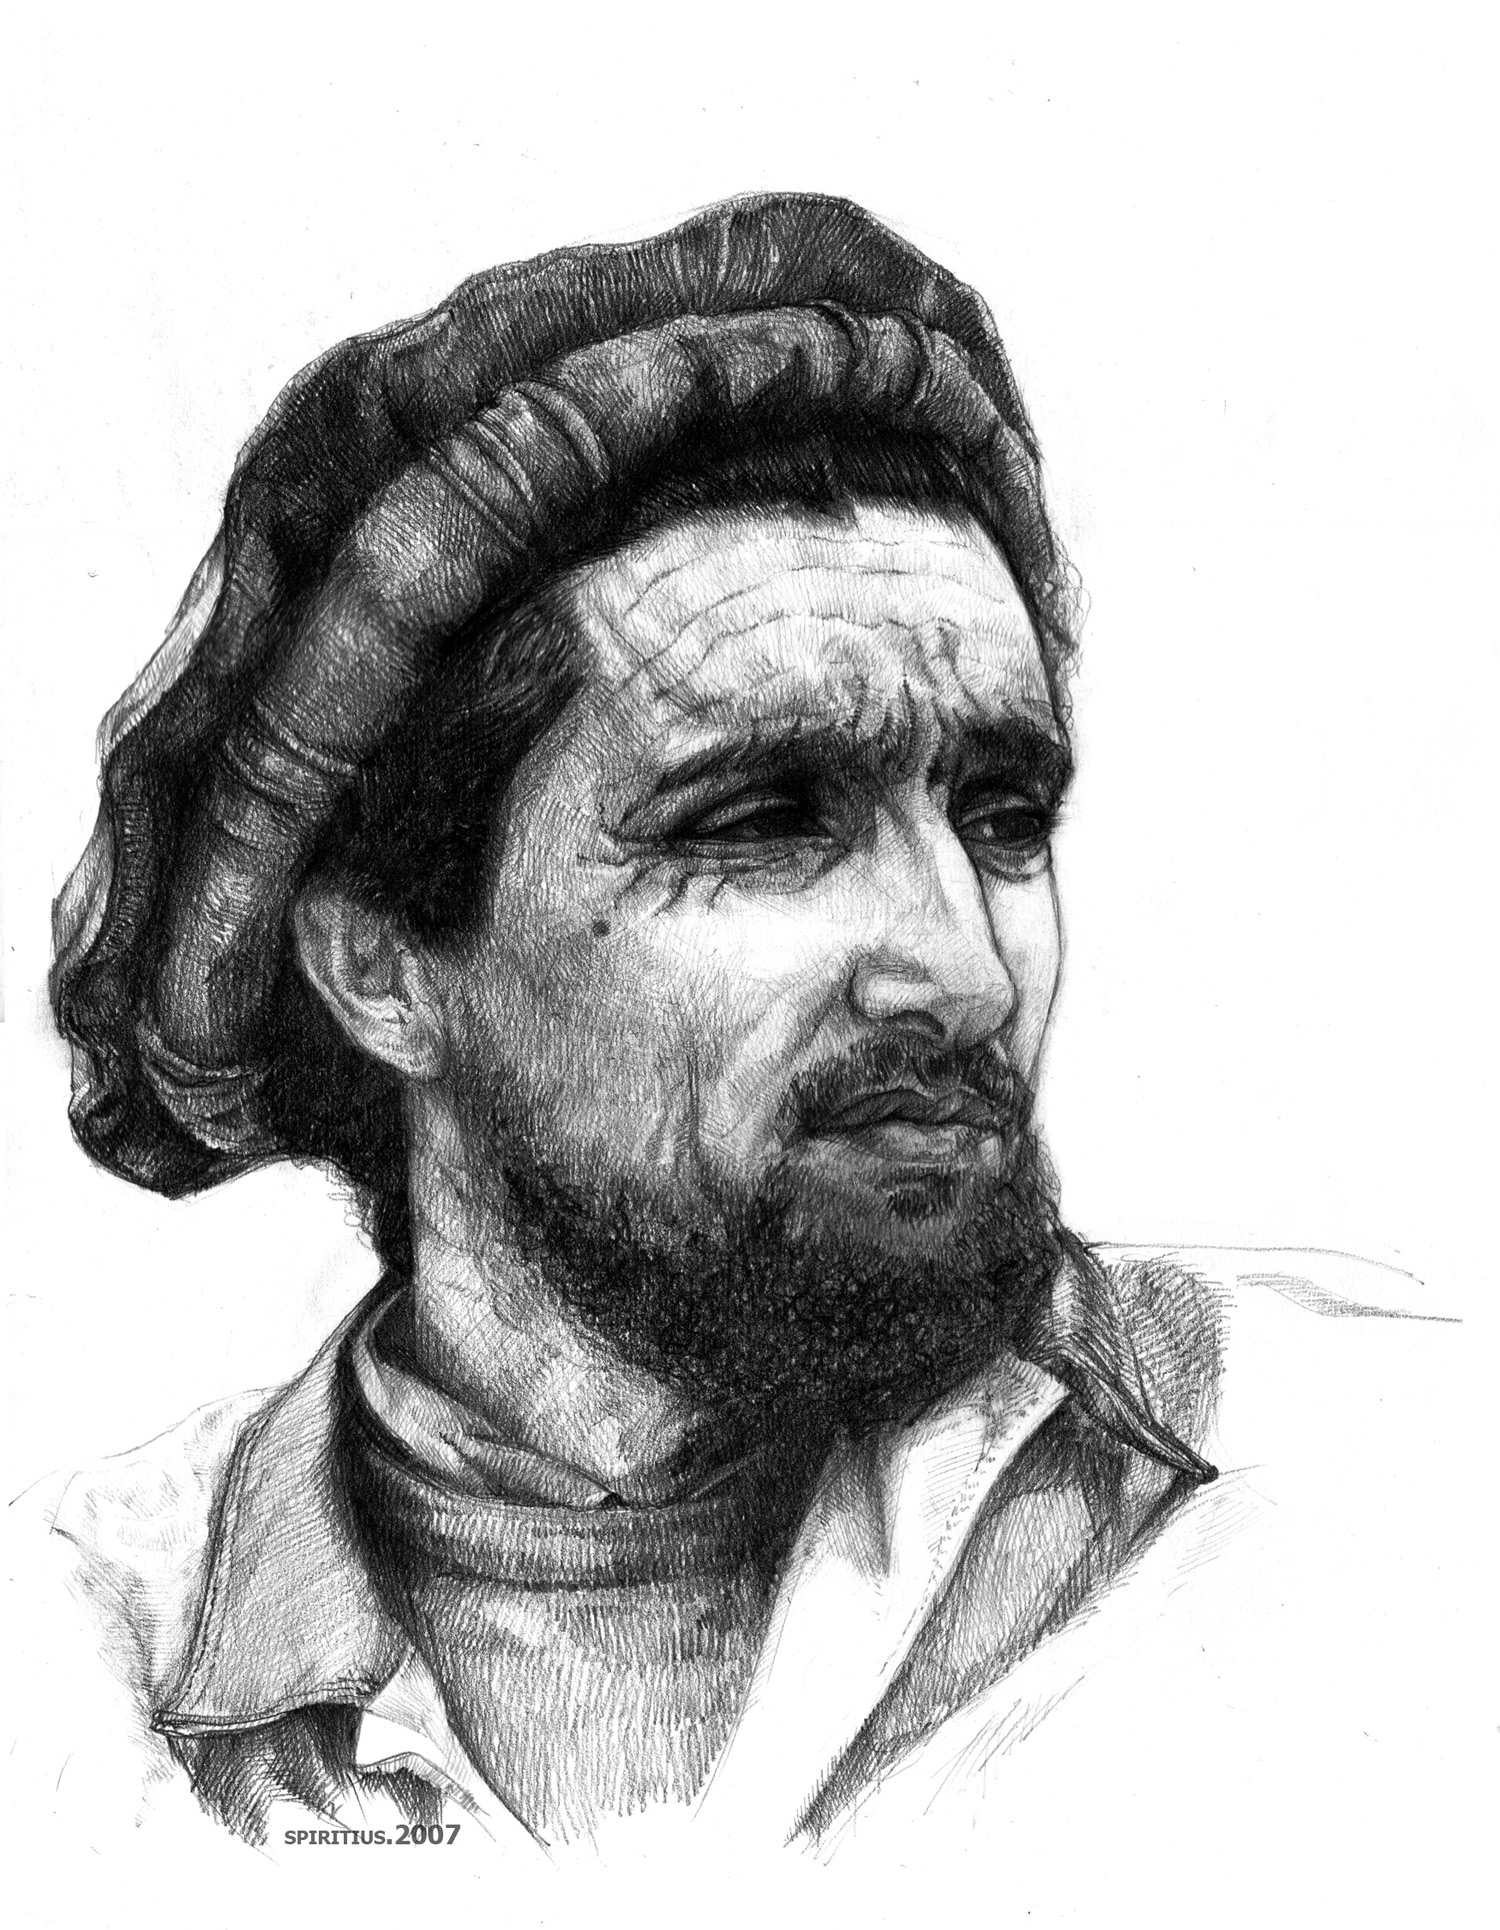 akhmad_shah_massoud_by_spiritius.jpg